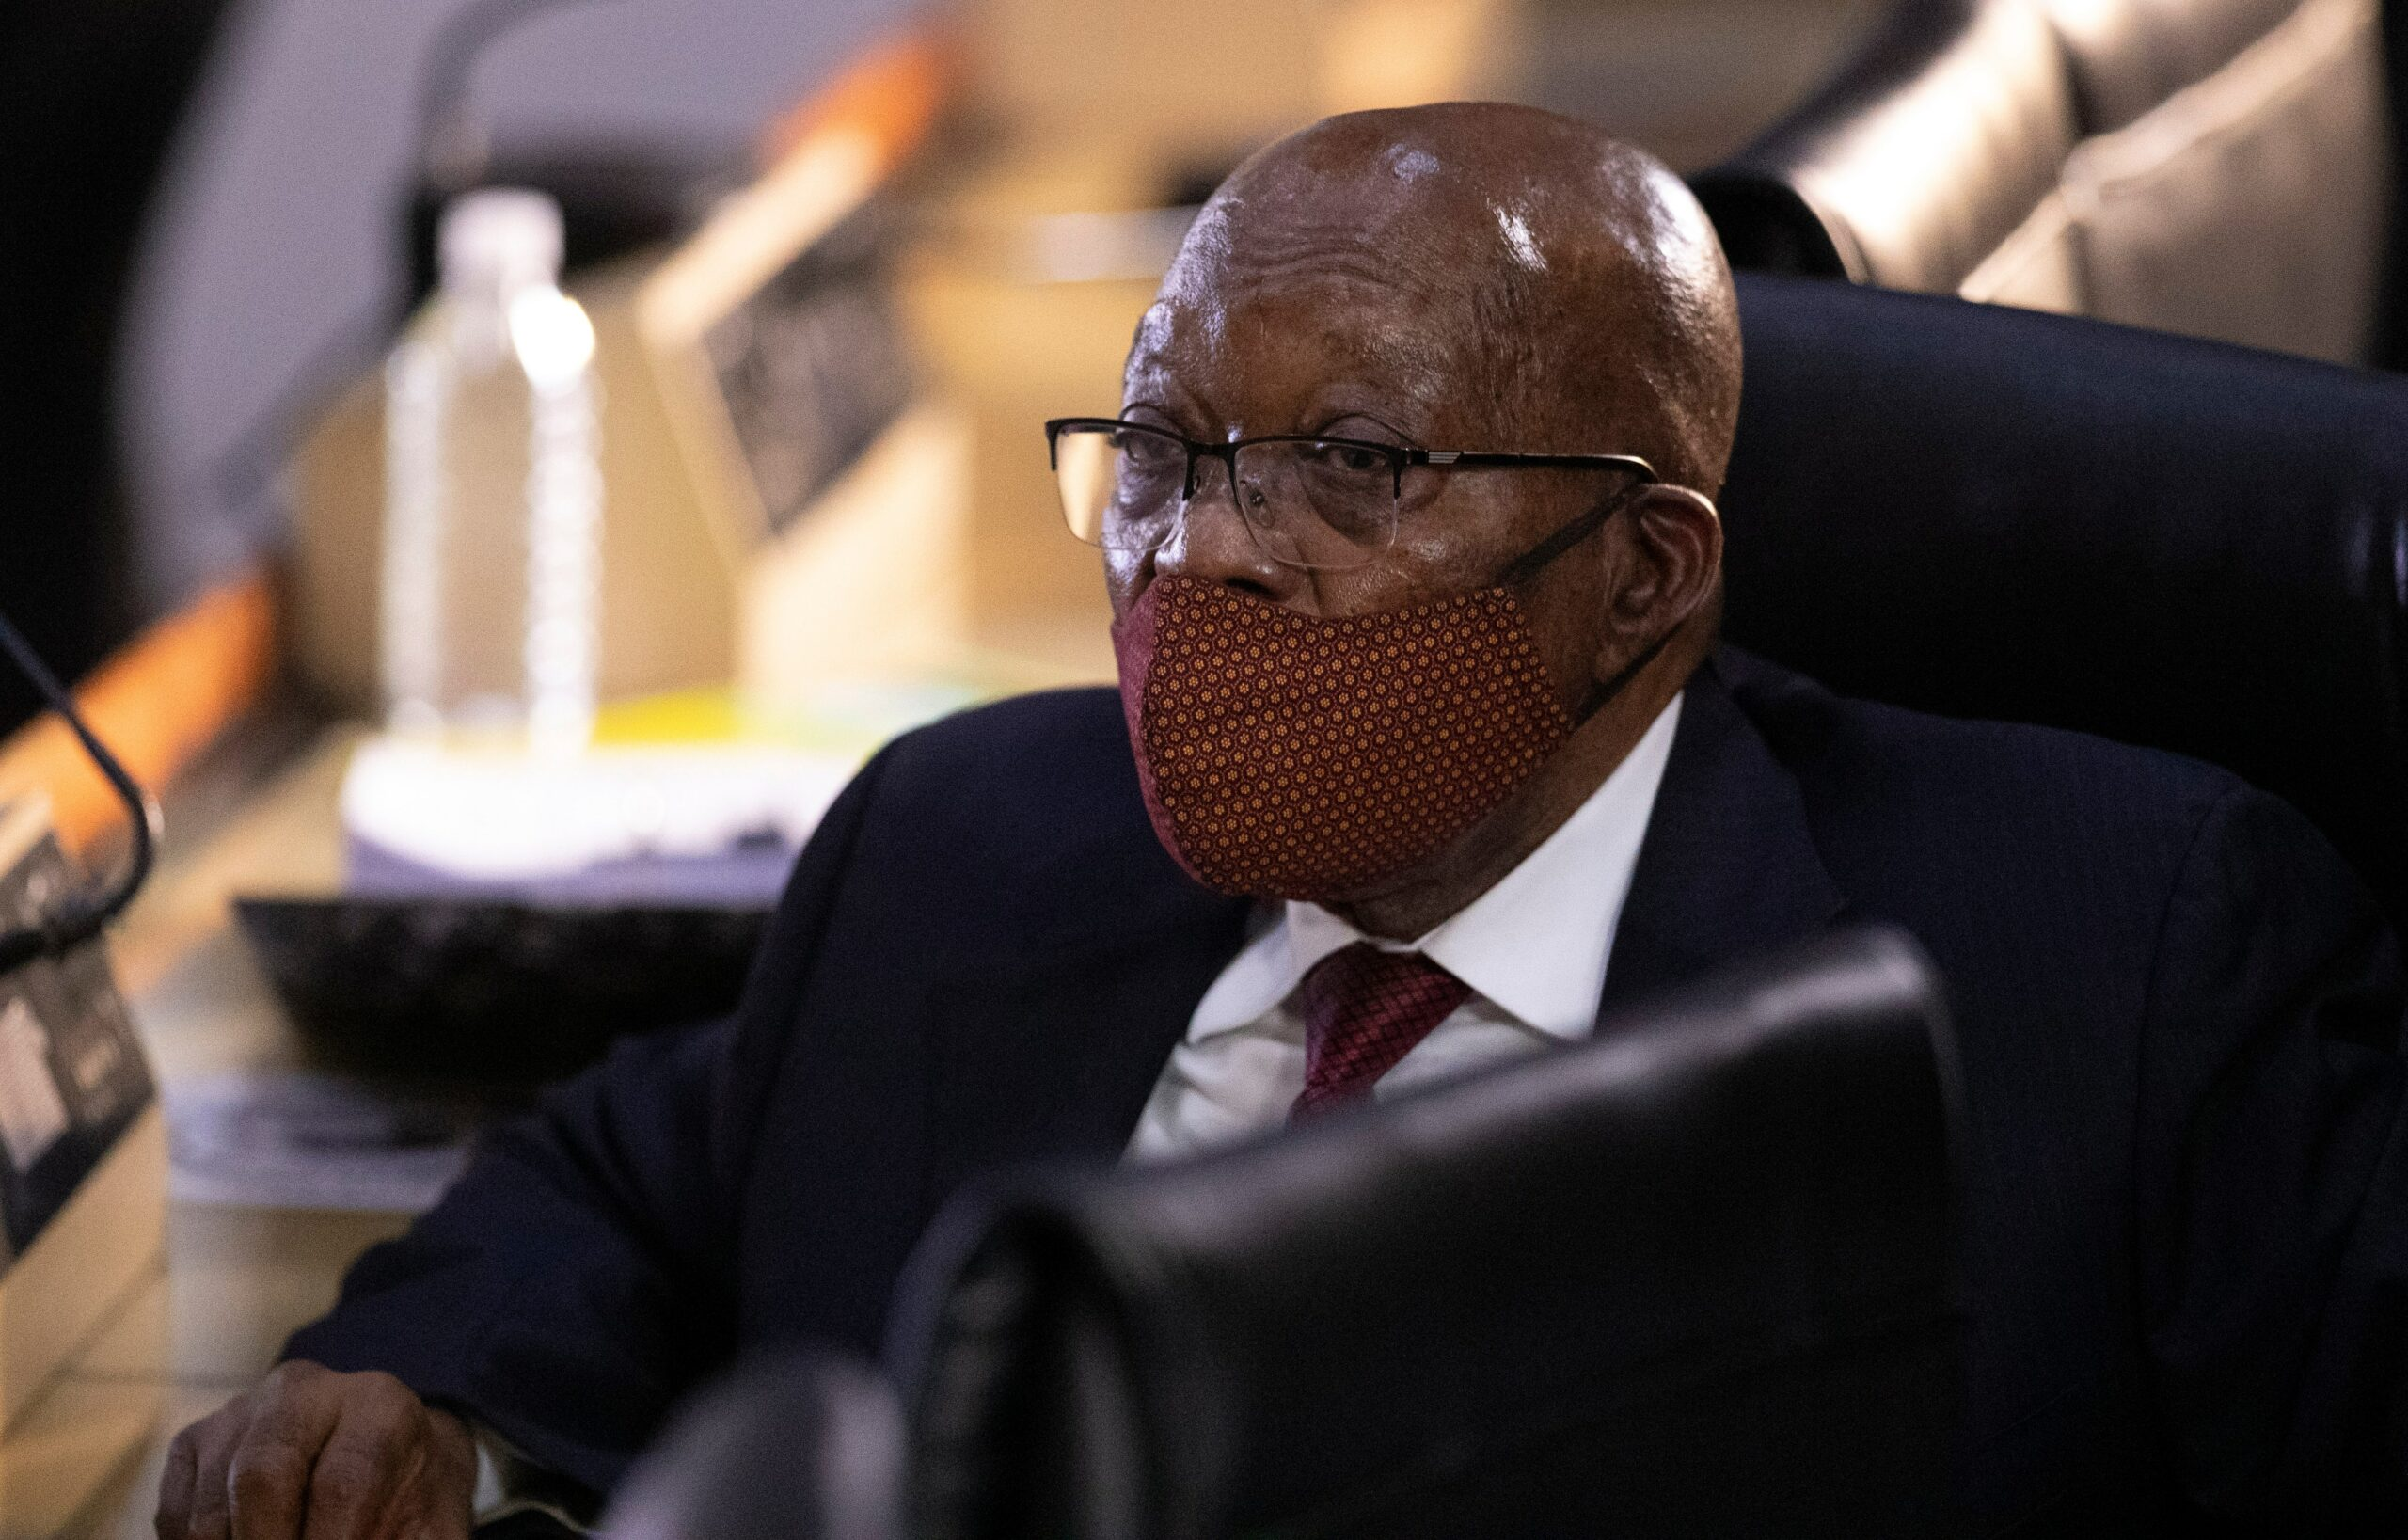 Former South African President Zuma Makes First Appearance Before Judicial Commission | Voice of America